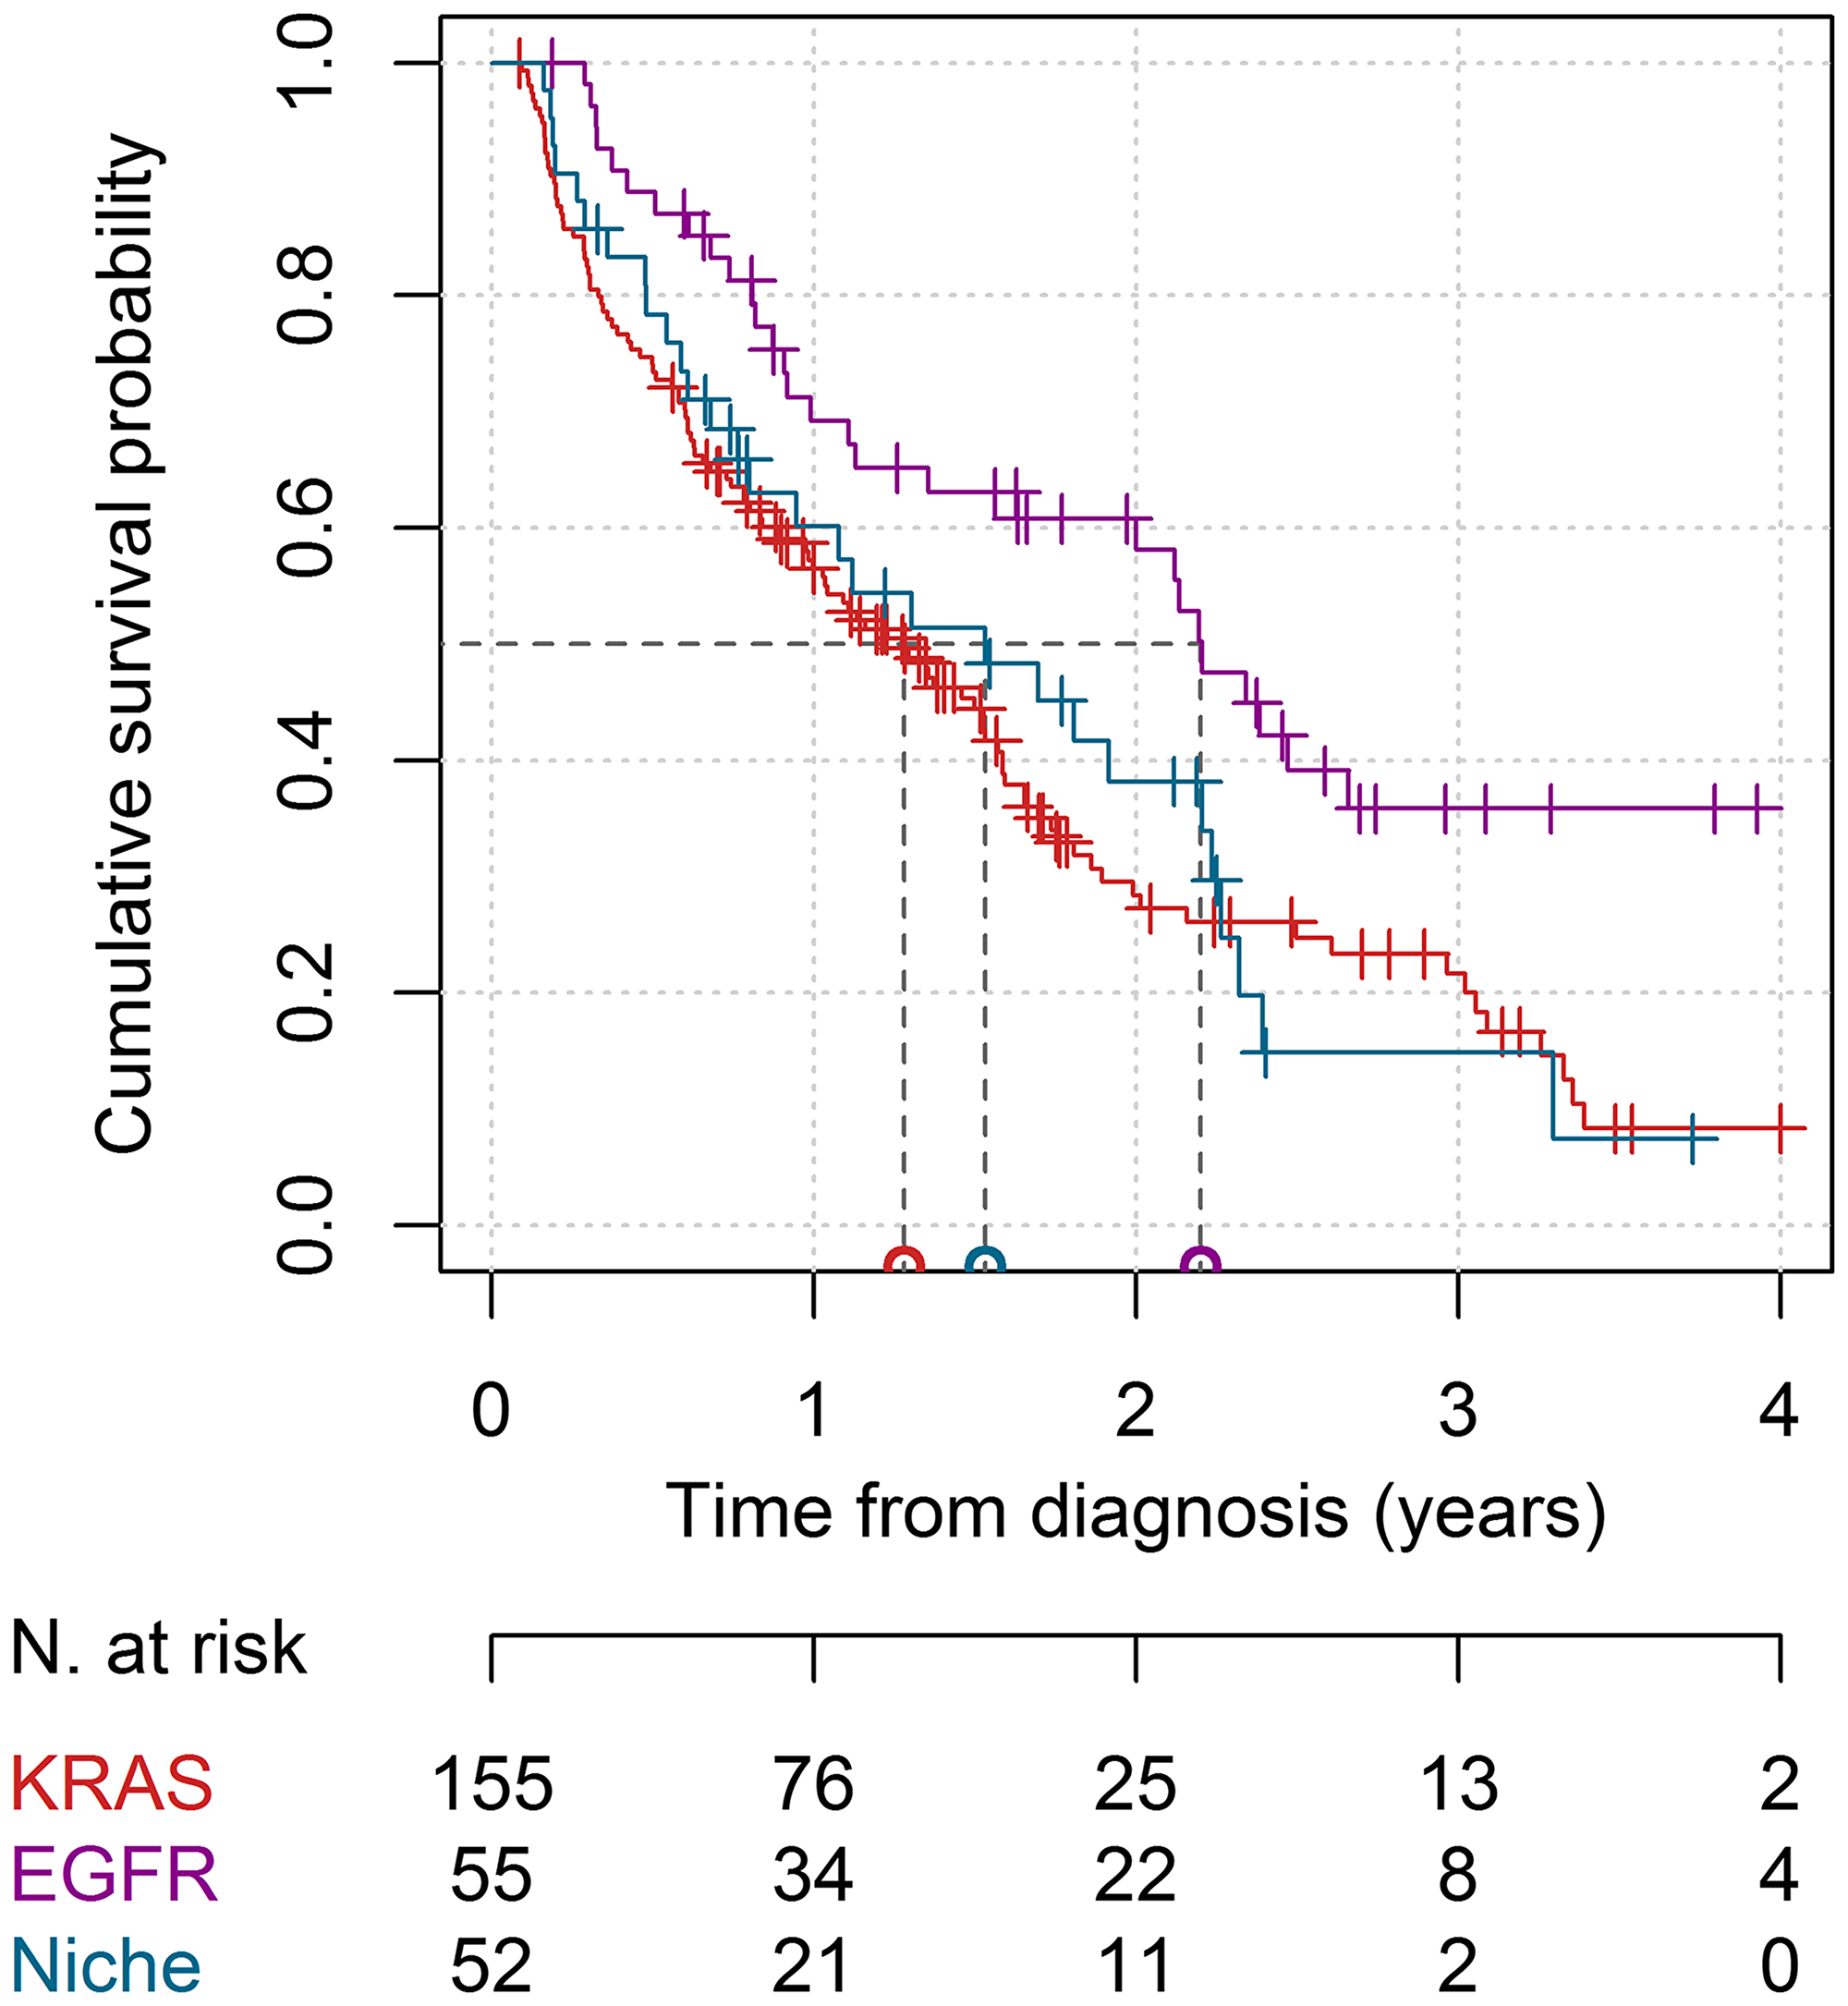 Survival curves in the KRAS, EGFR, and niche mutations cohorts.